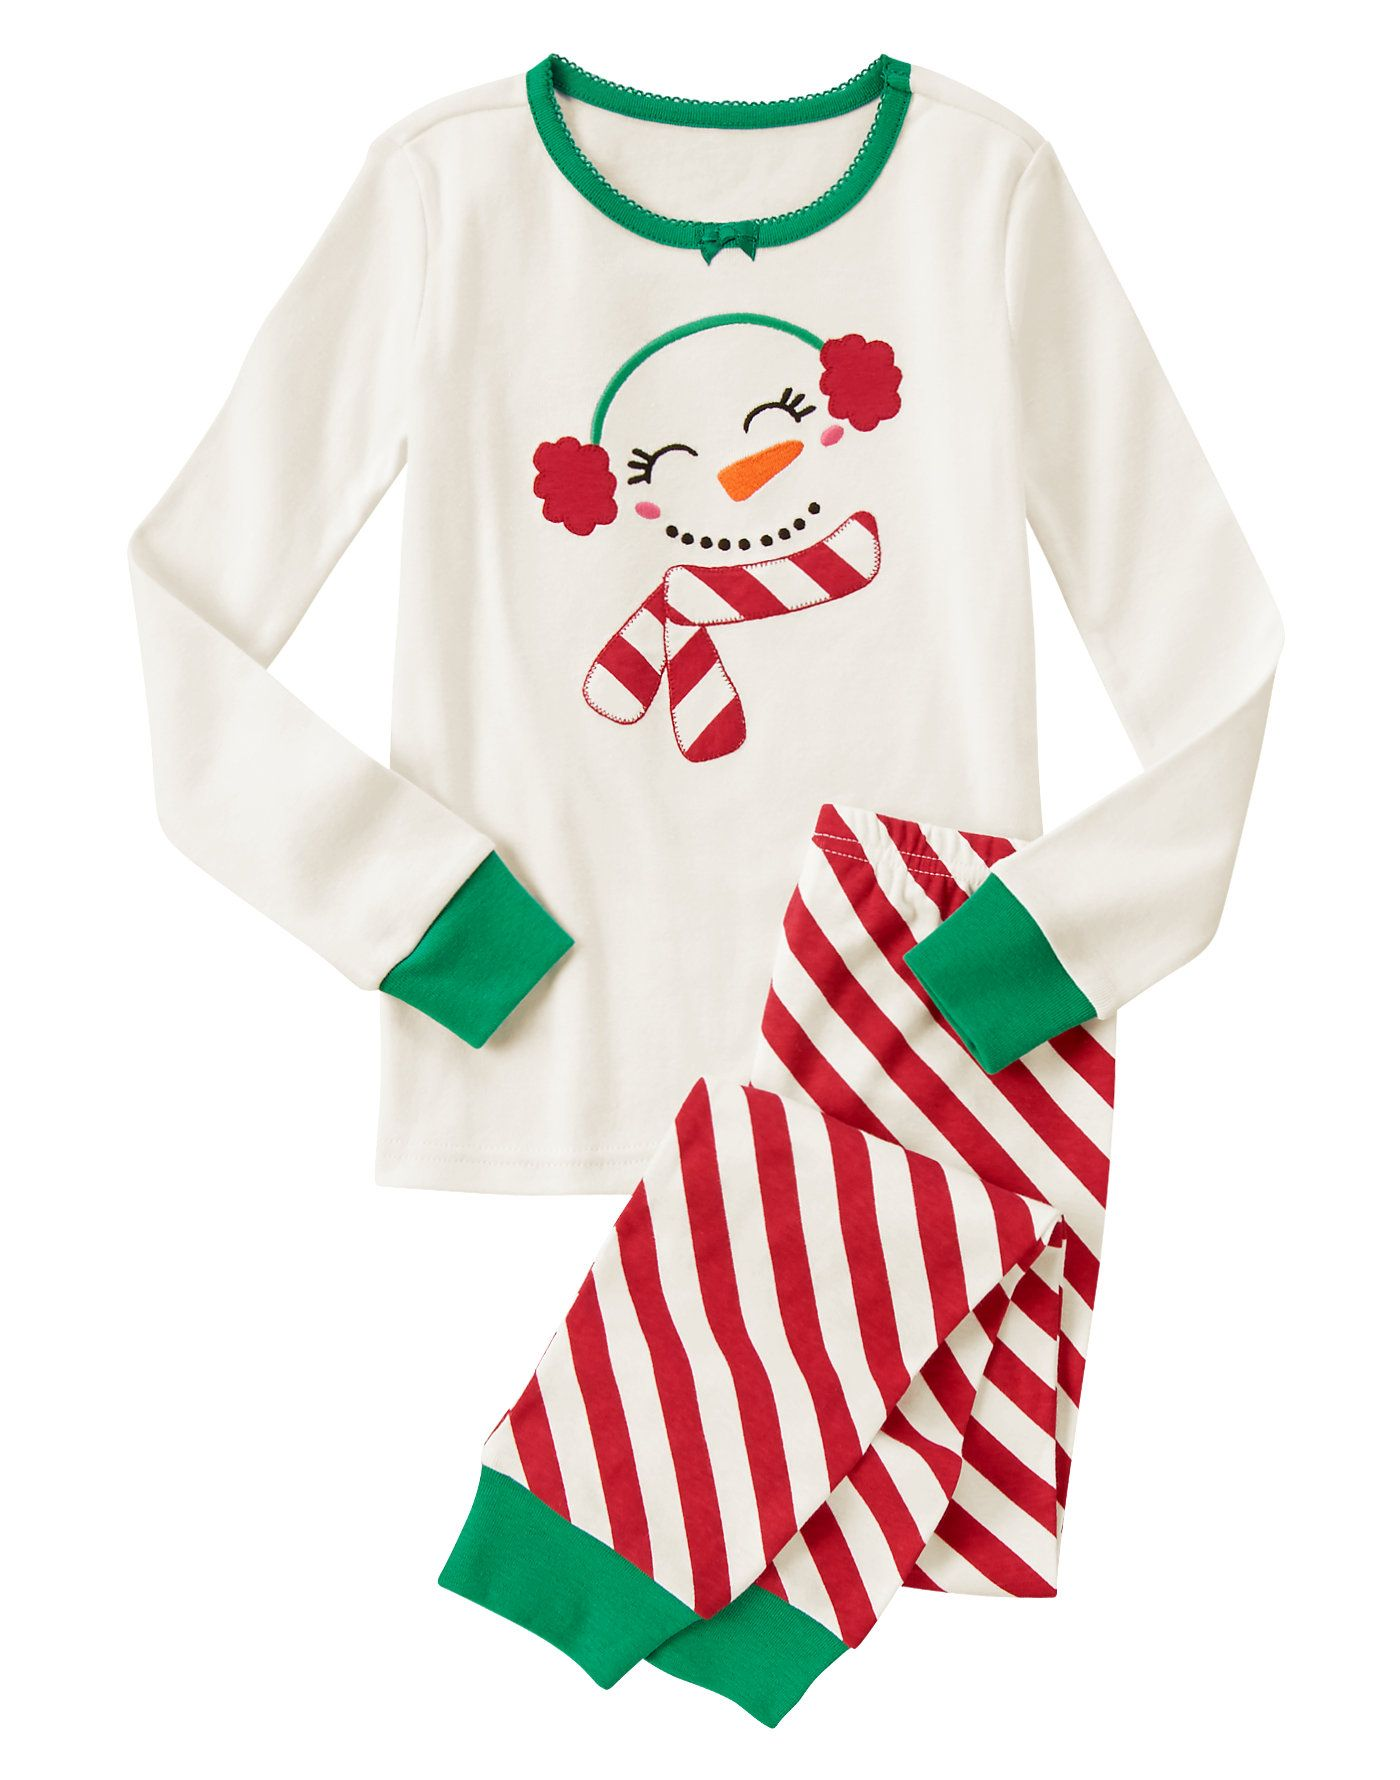 Cute Snowman TwoPiece Gymmies at Gymboree  Baby Clothes And Room